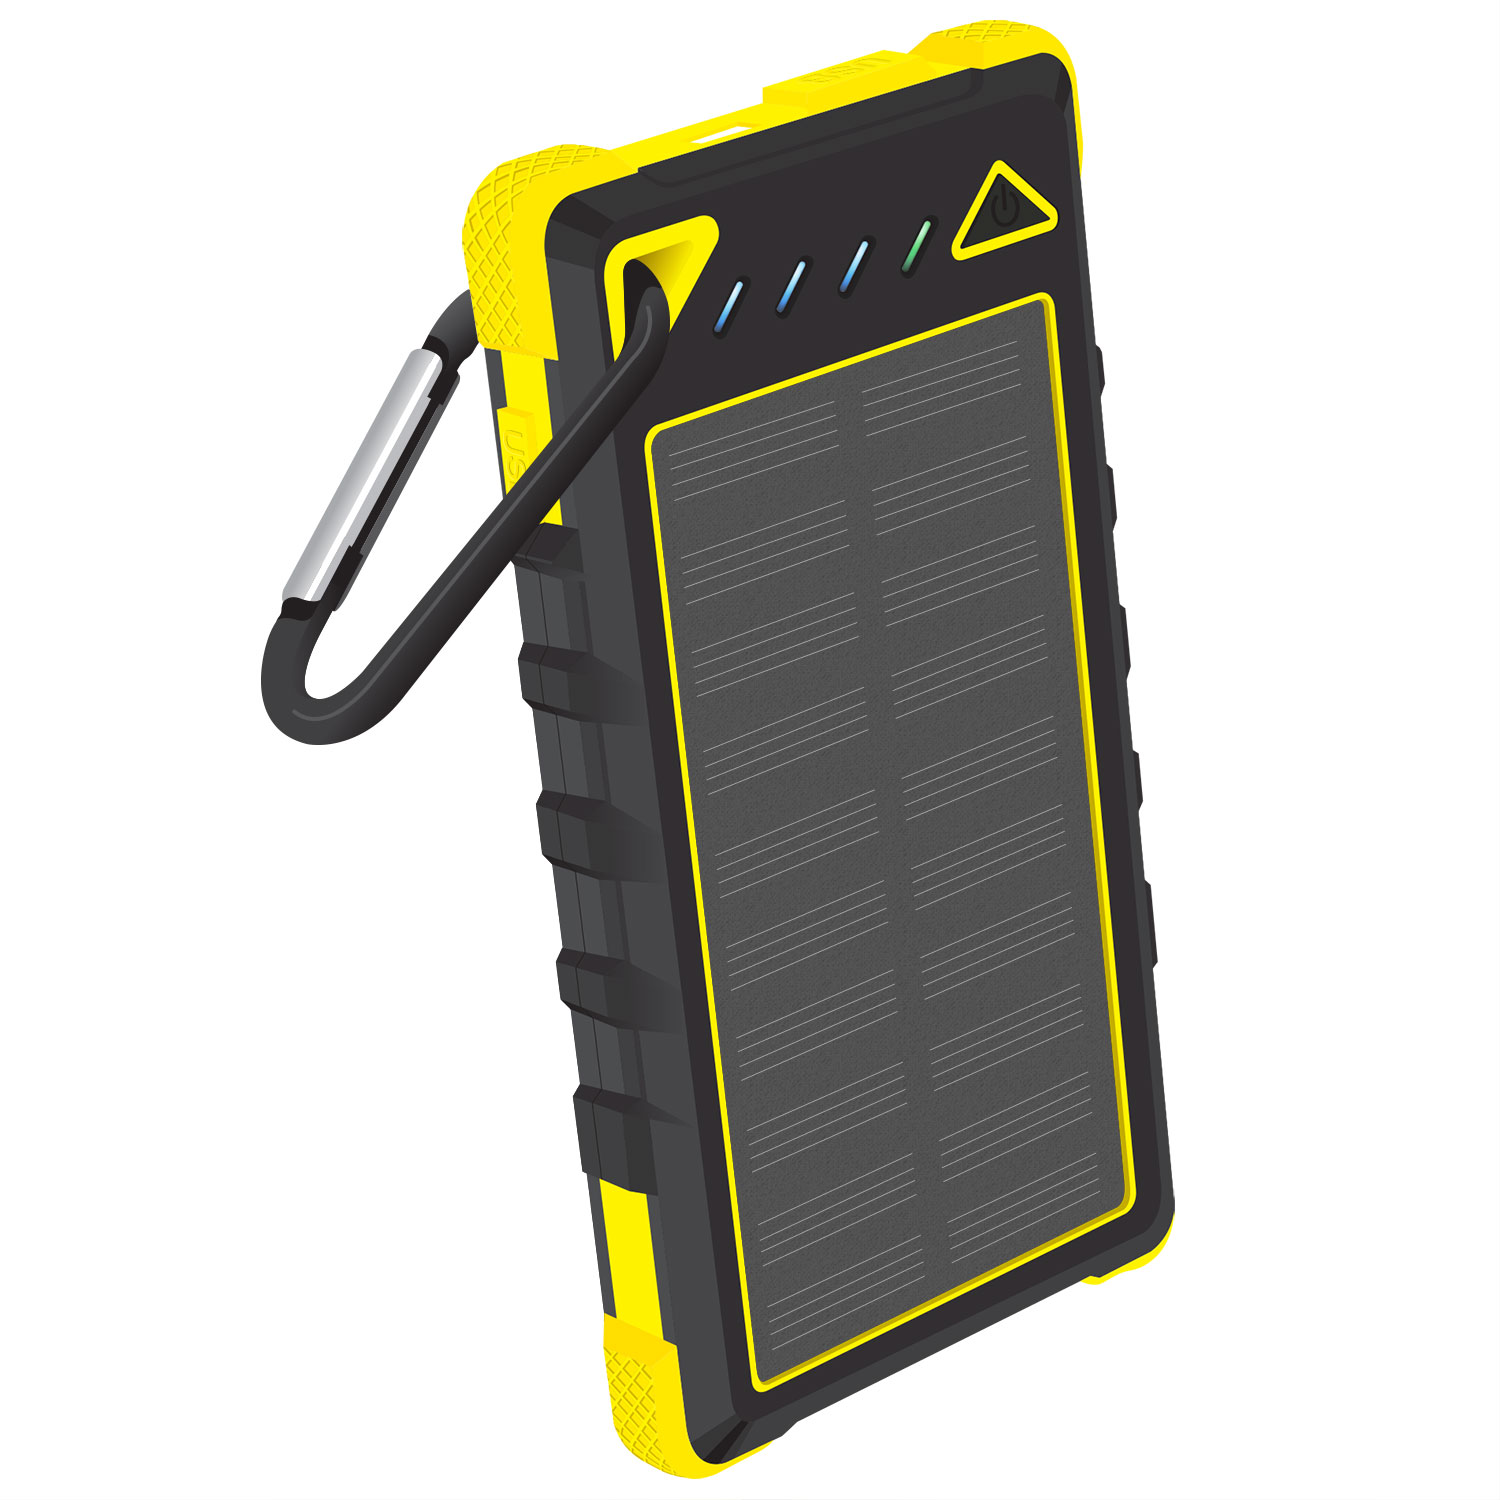 Huawei P9 Solar Powered Portable PowerBank Type-C Yellow